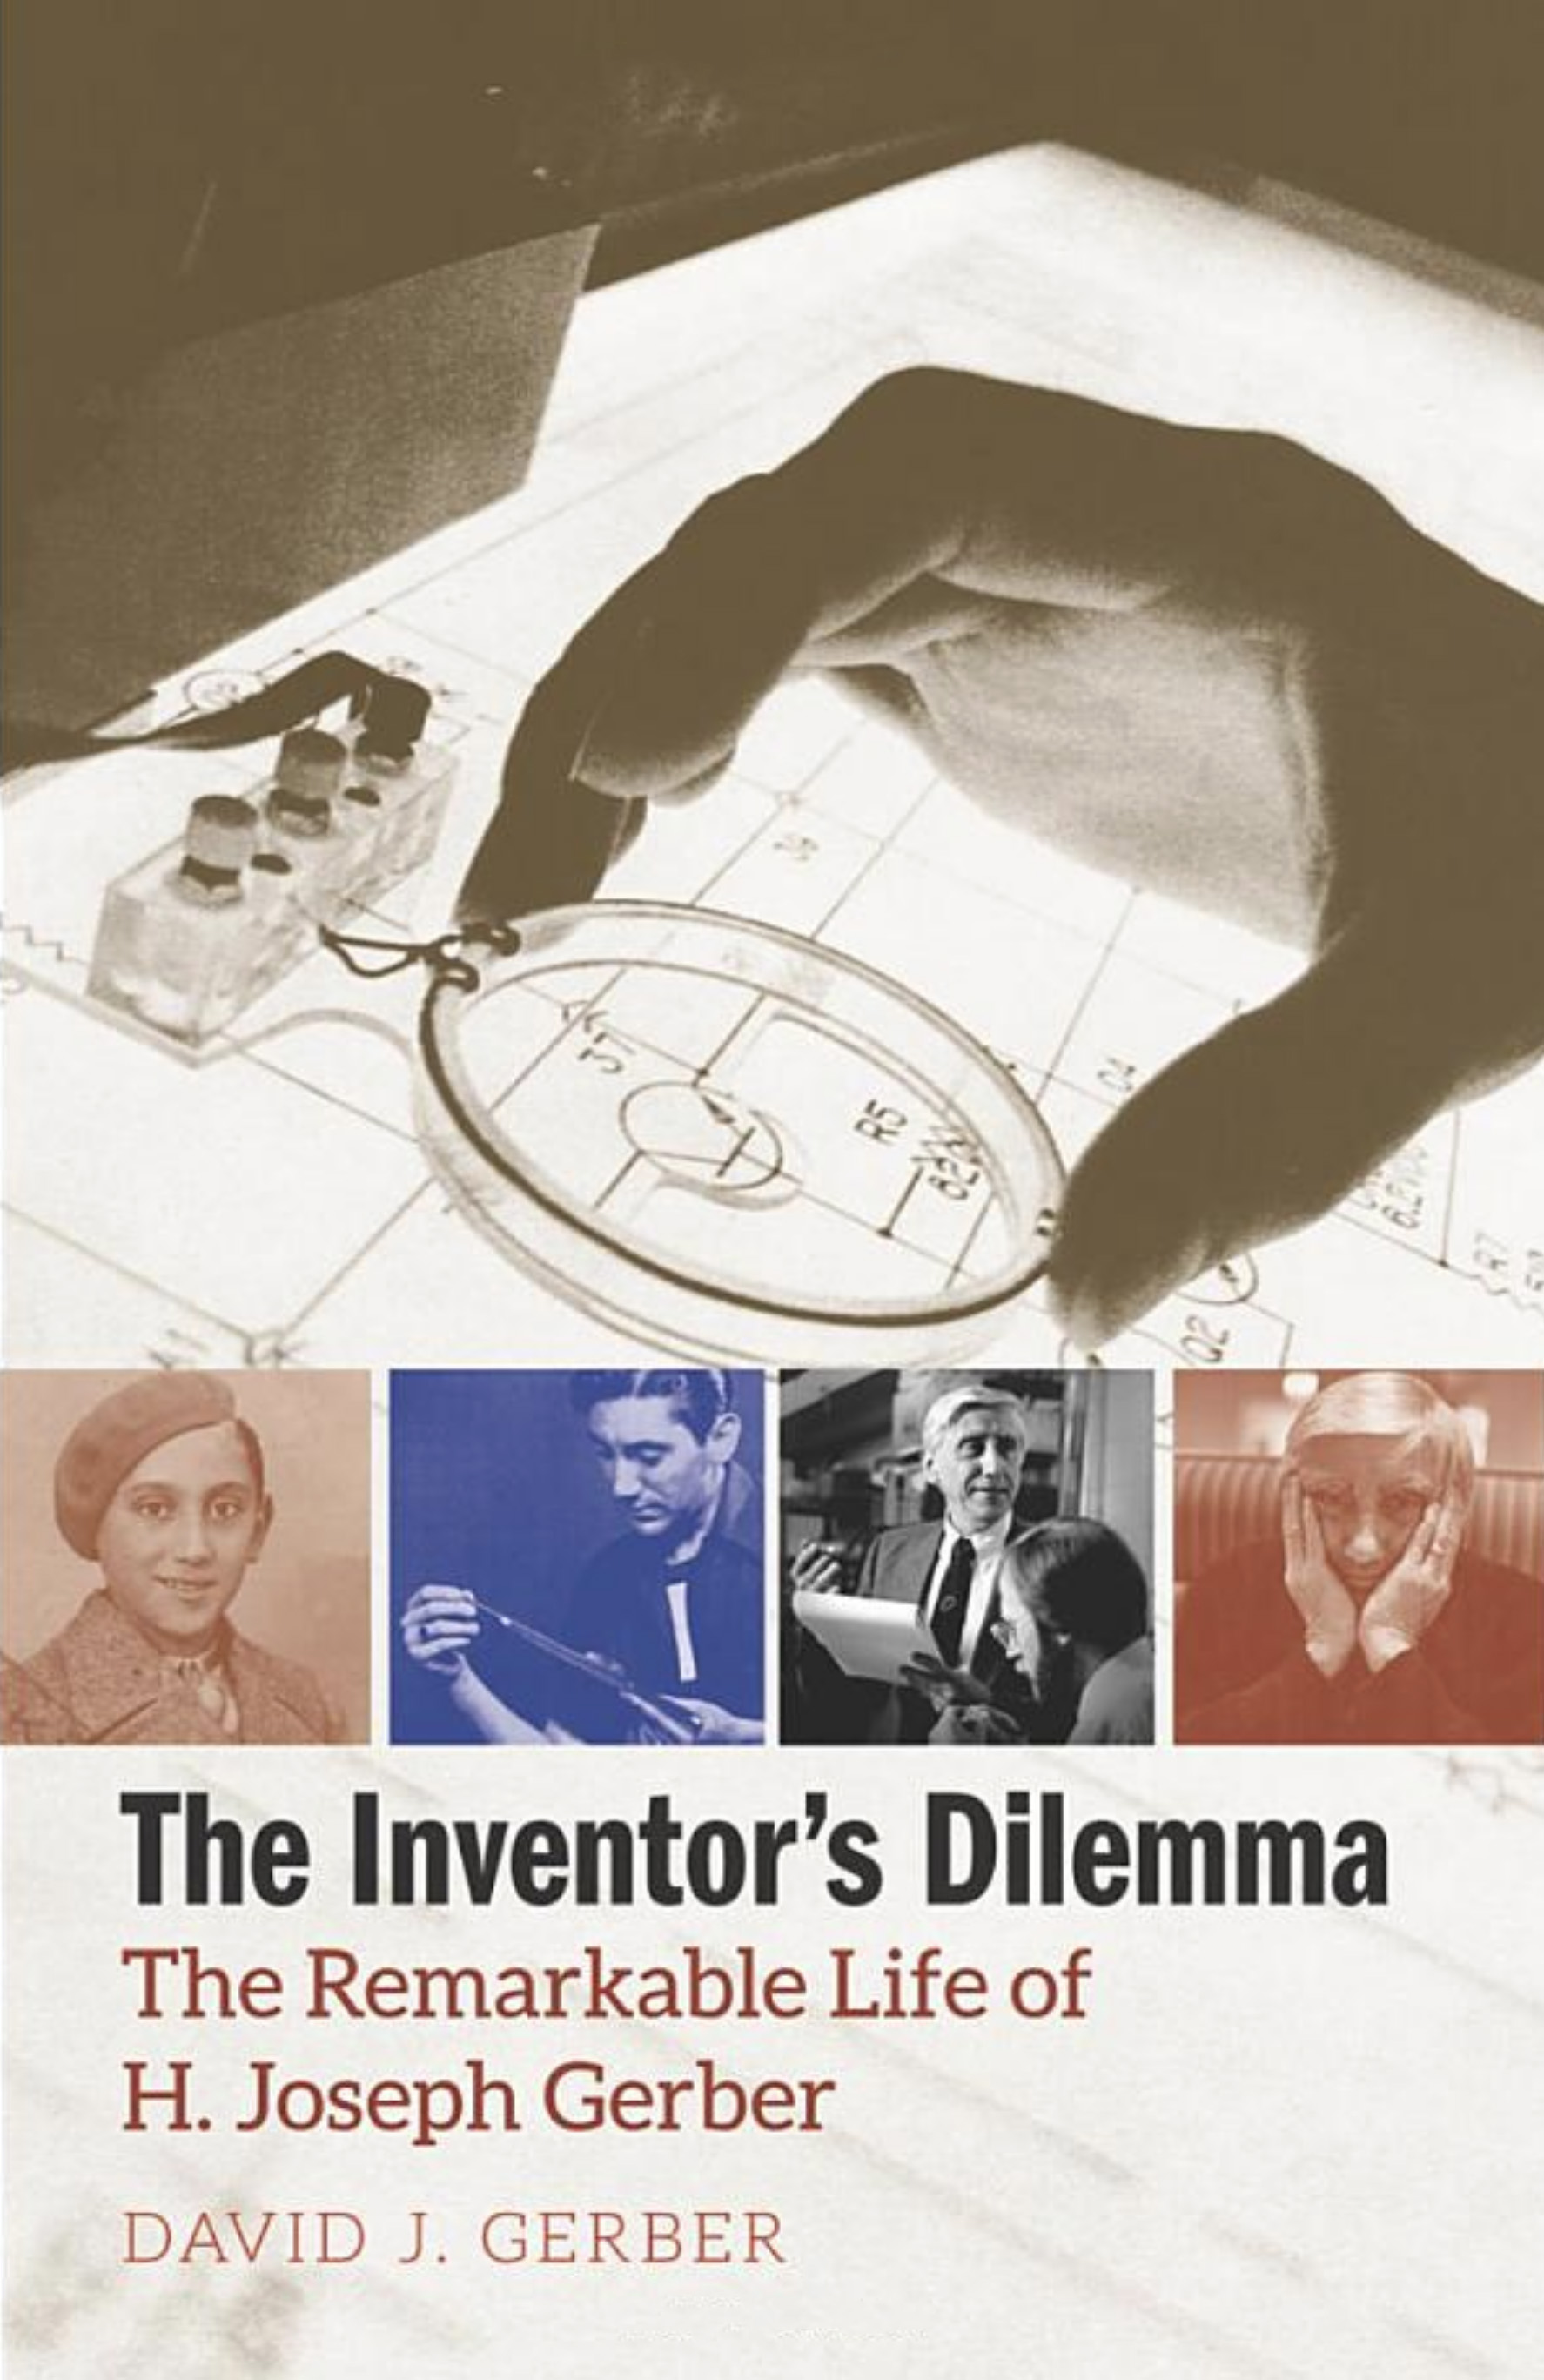 The Inventor's Dilemma: The Remarkable Life of H. Joseph Gerber